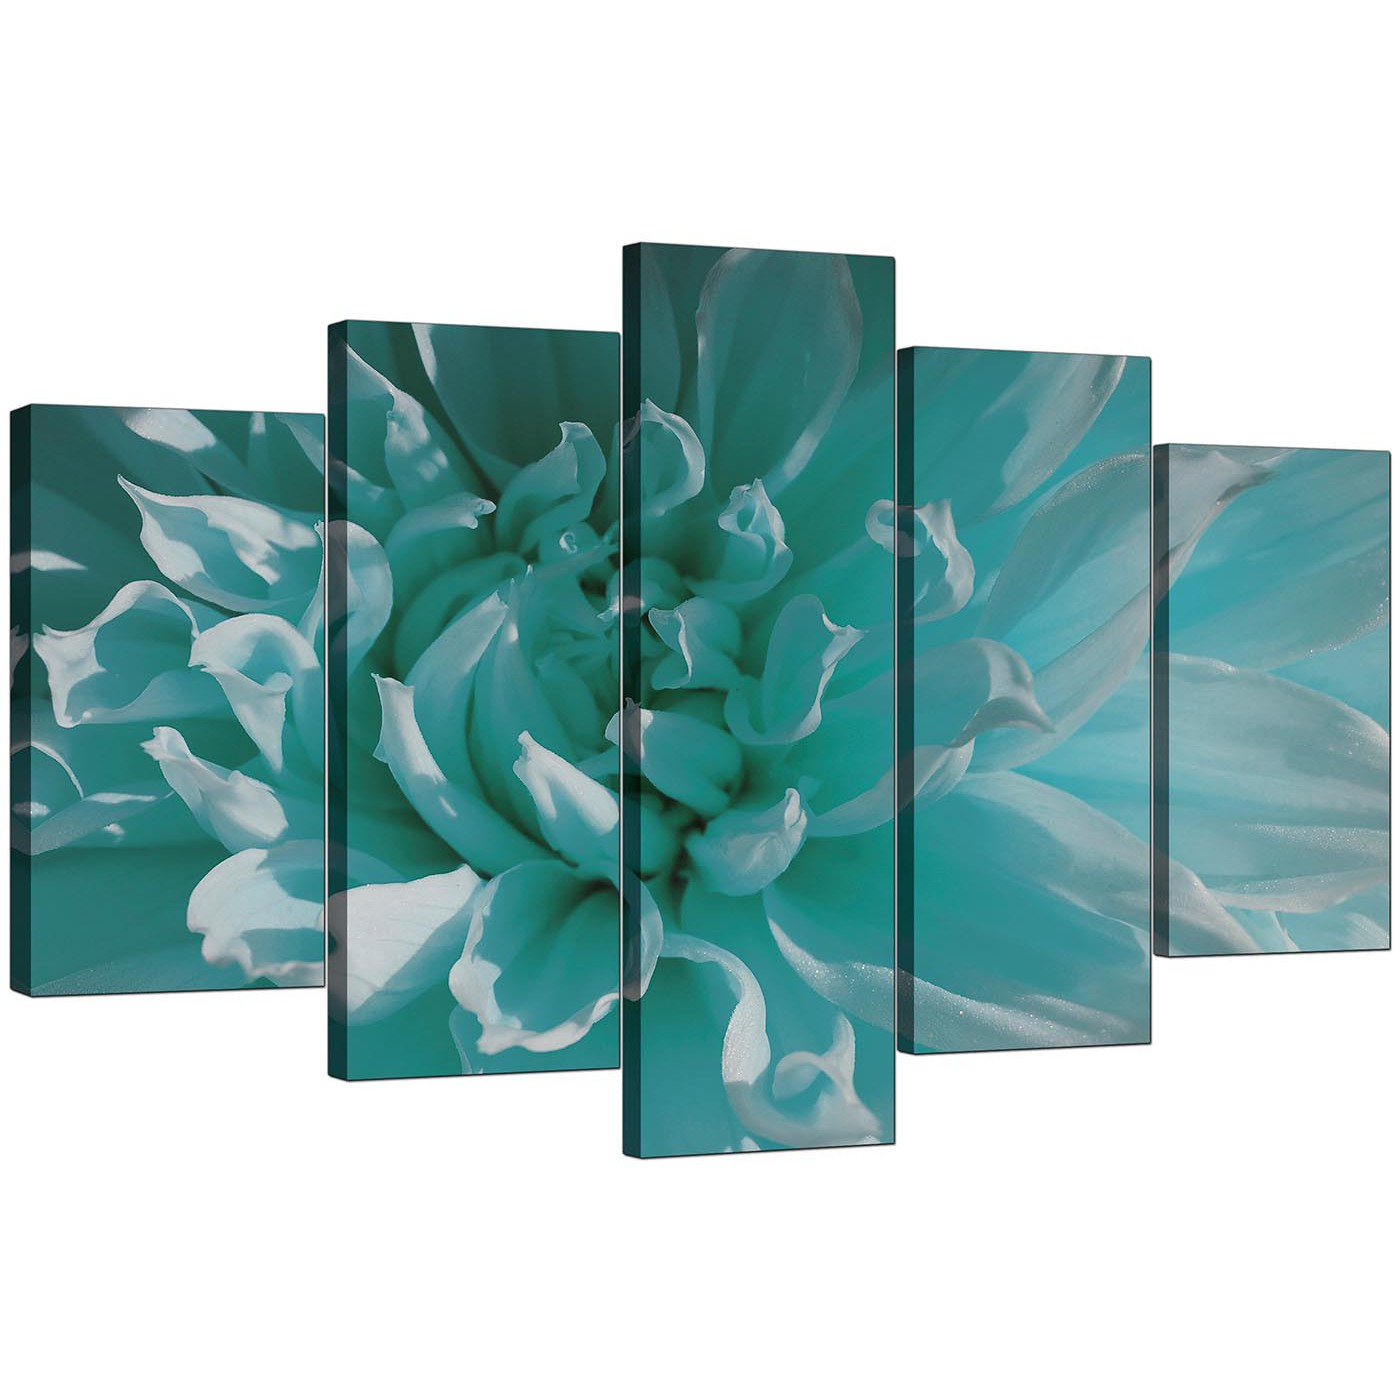 Large Canvas Prints Cheap Extra Large Flower Canvas Wall Art 5 Piece In Teal